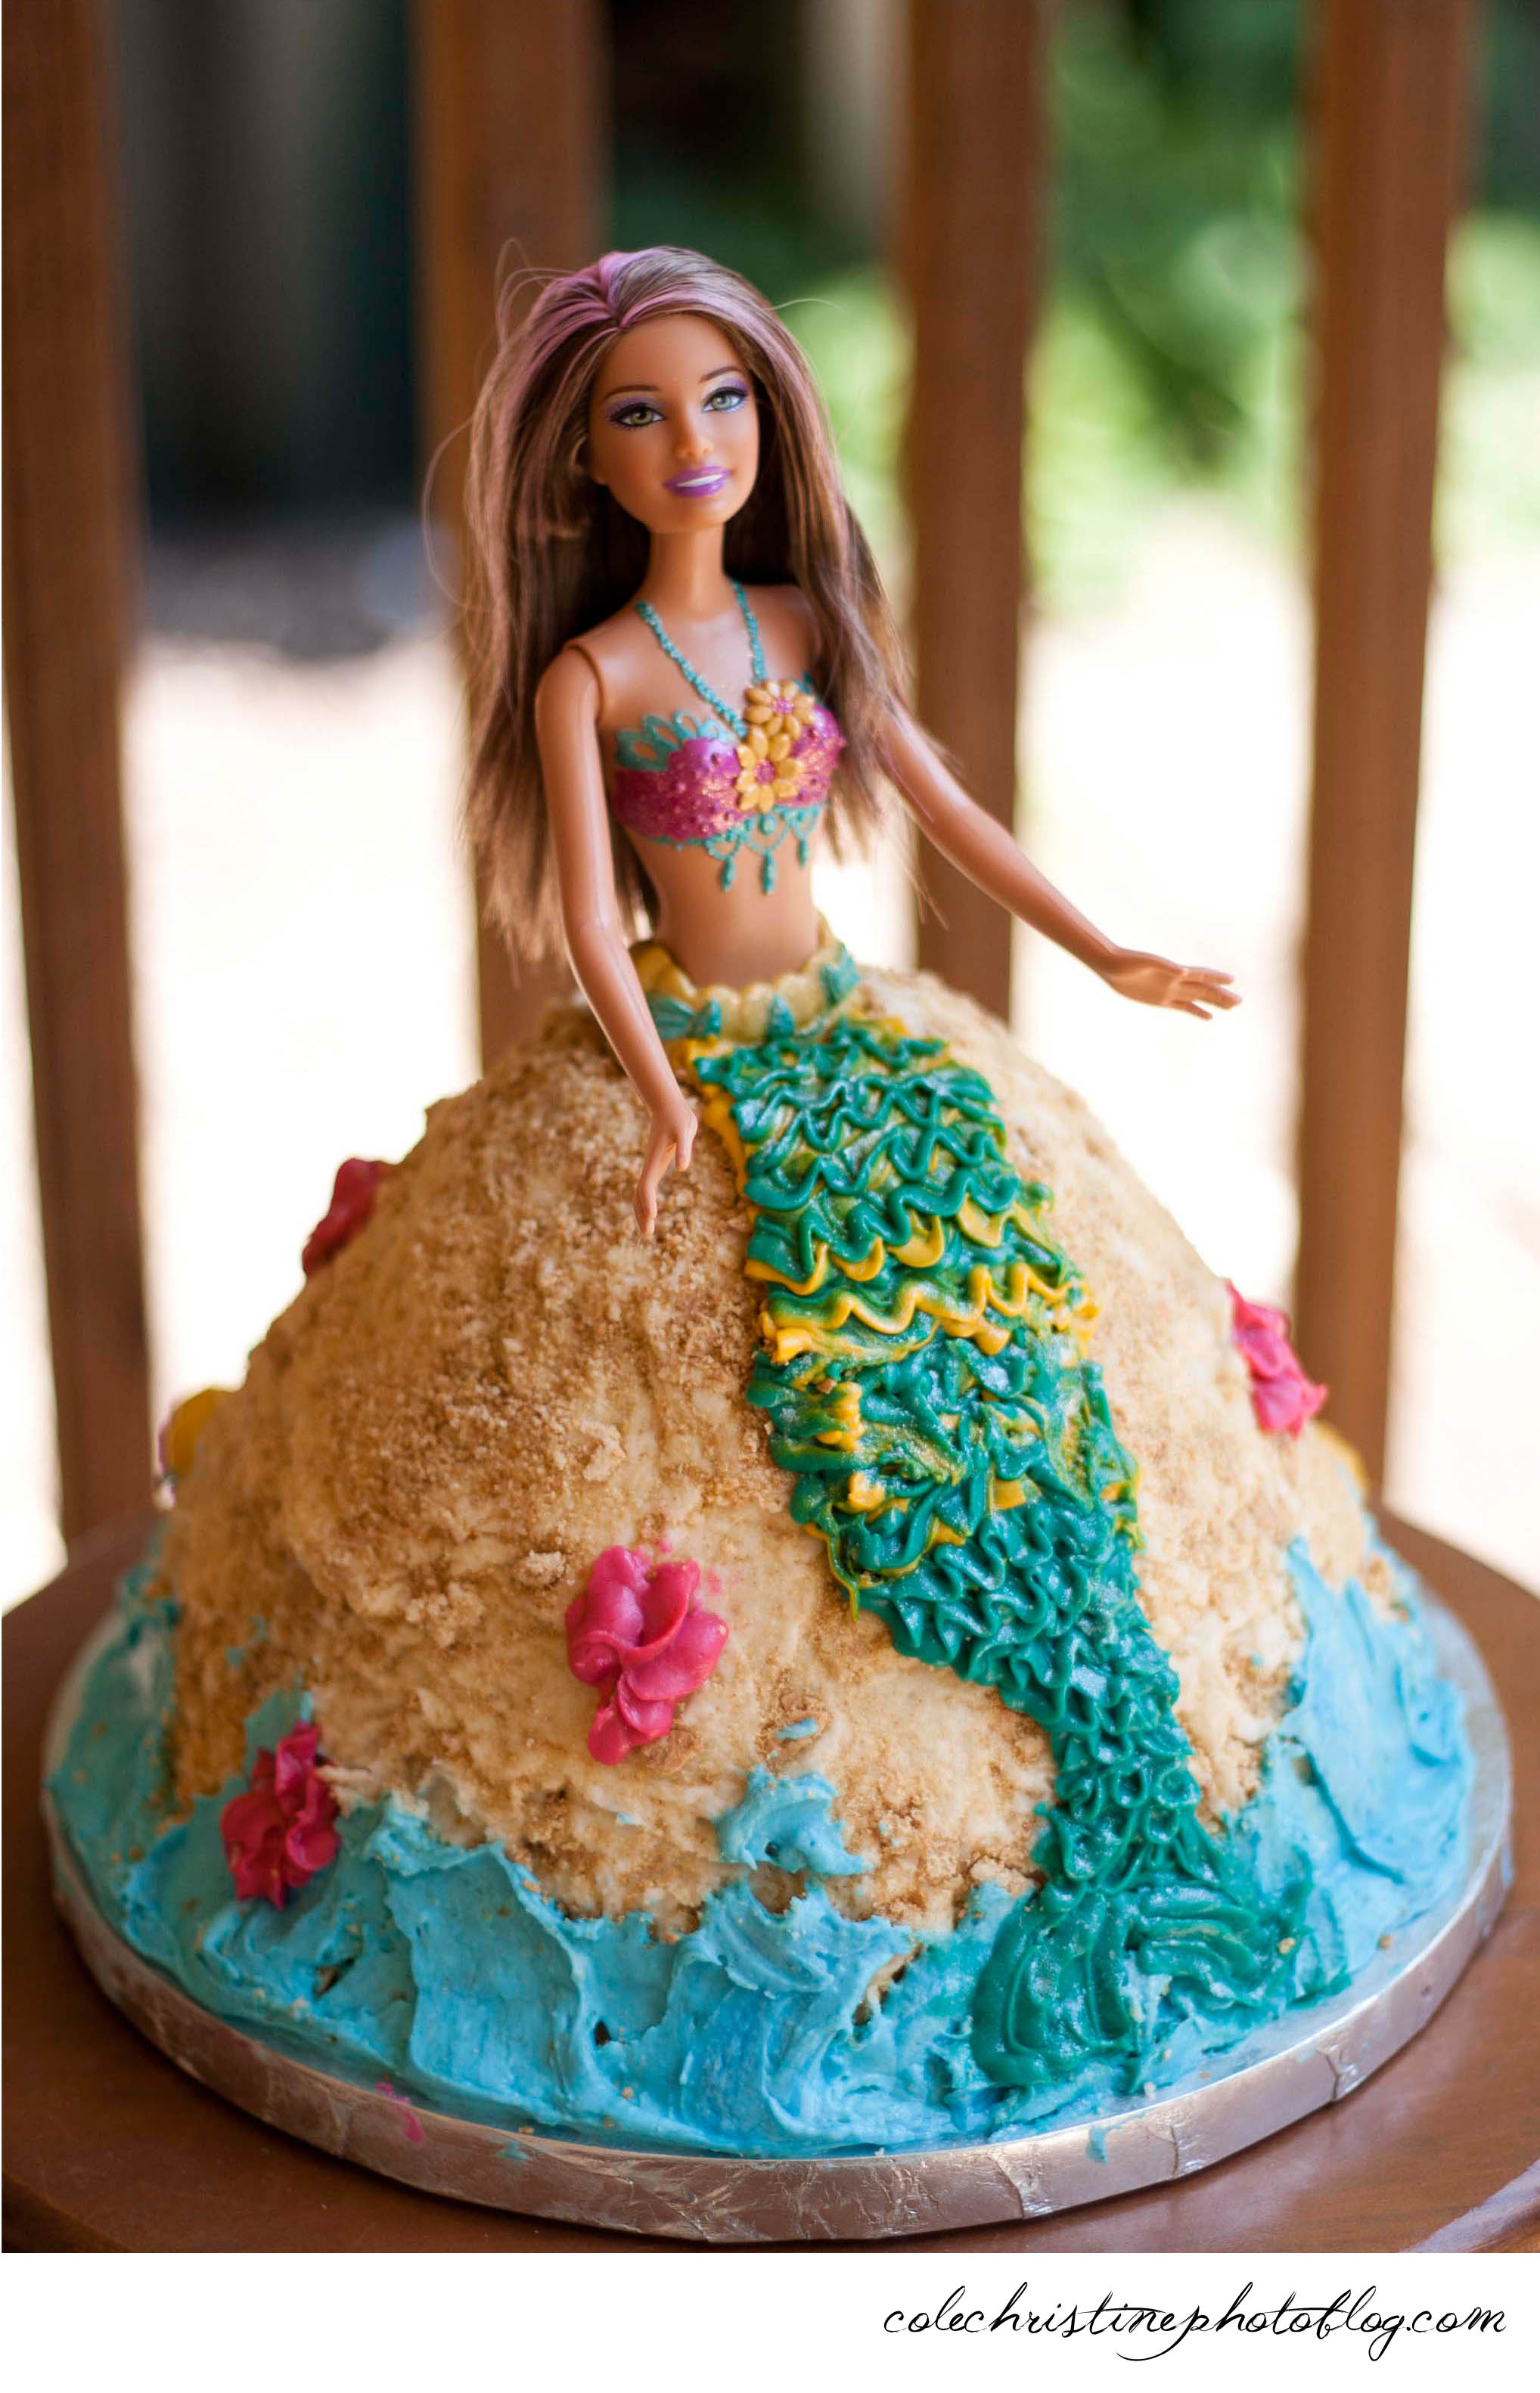 Barbie Mermaid Cake Images : Mermaid Barbie Birthday Cake! Cole Christine Photography